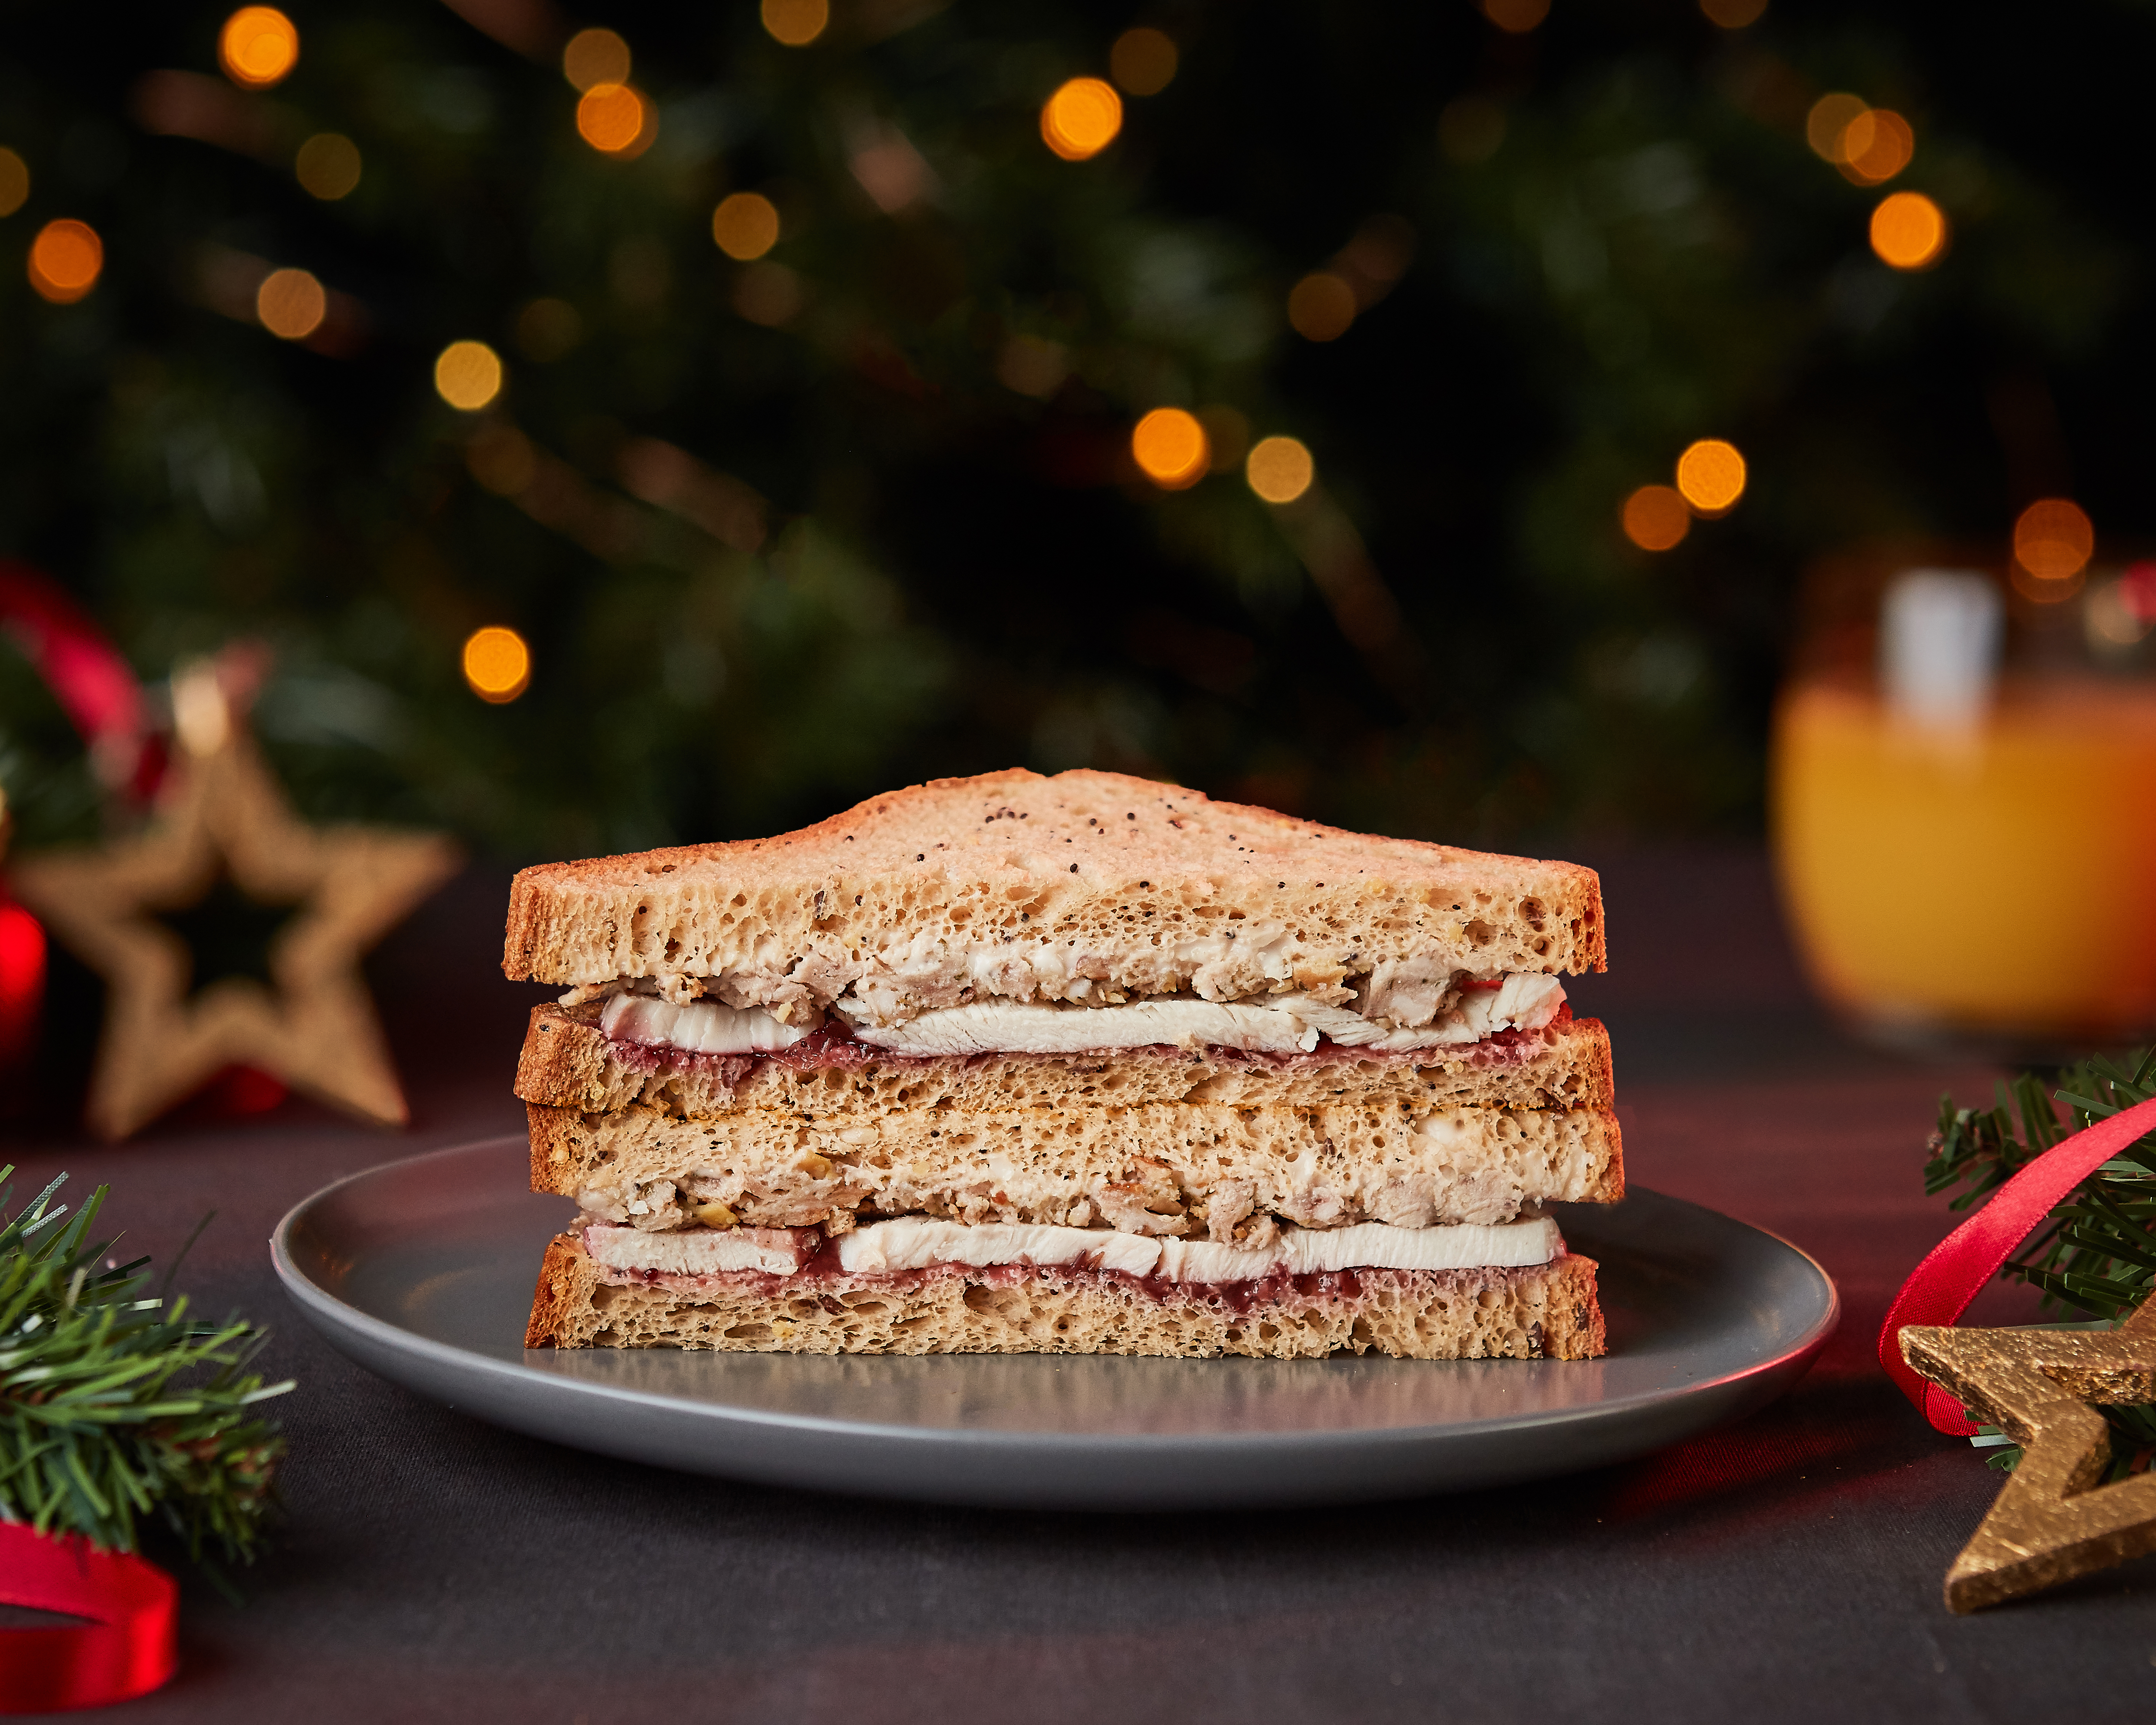 The Best Christmas Sandwiches For 2019 Which One Is Your